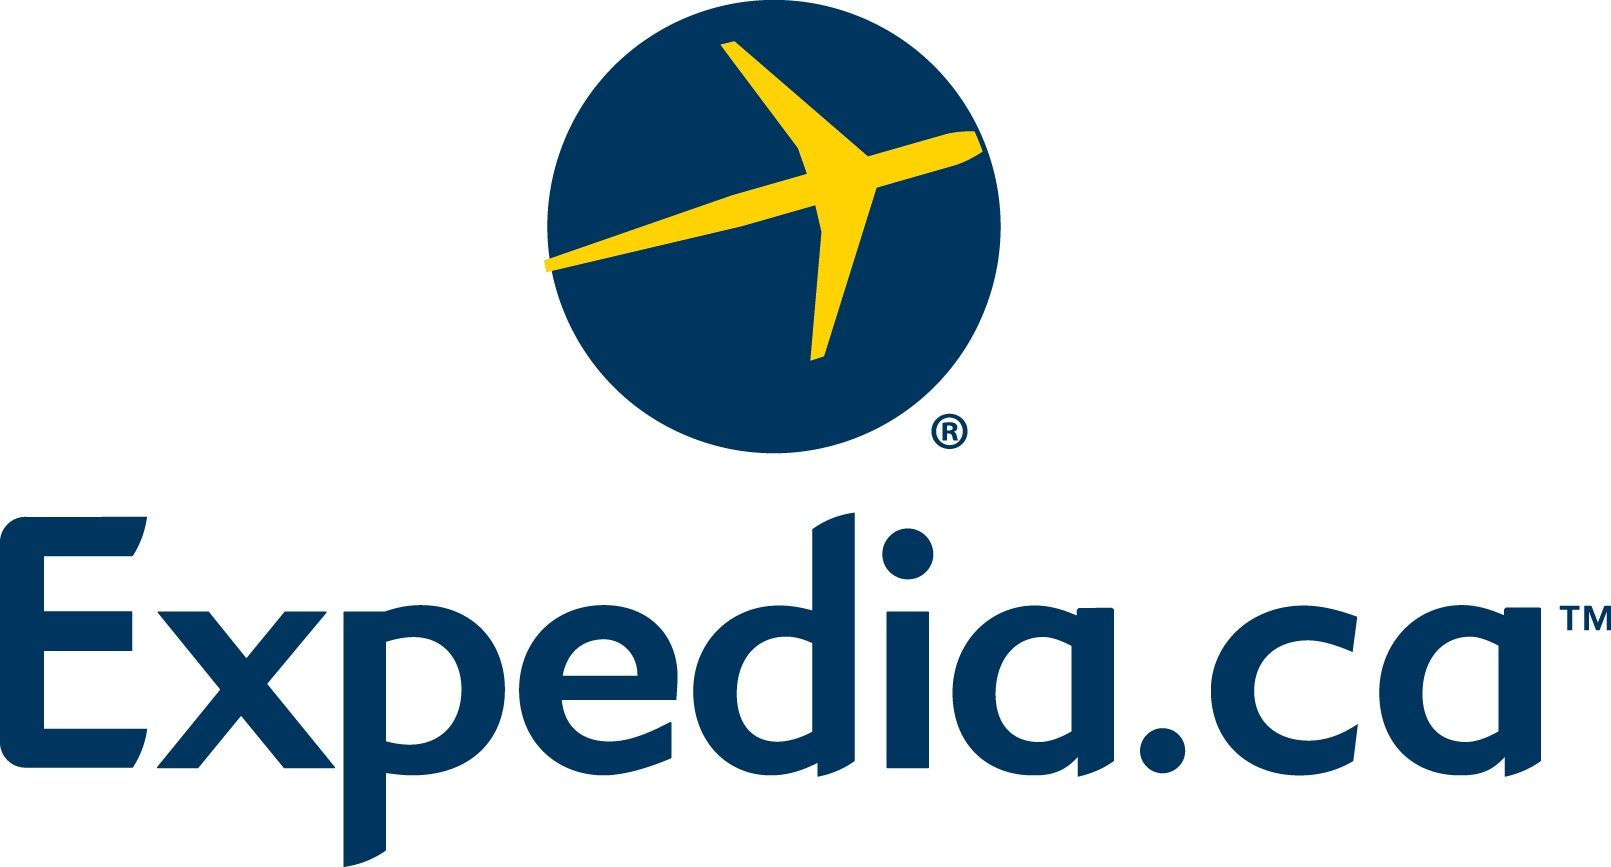 Expedia Logo - International Image Gallery | Expedia Brand